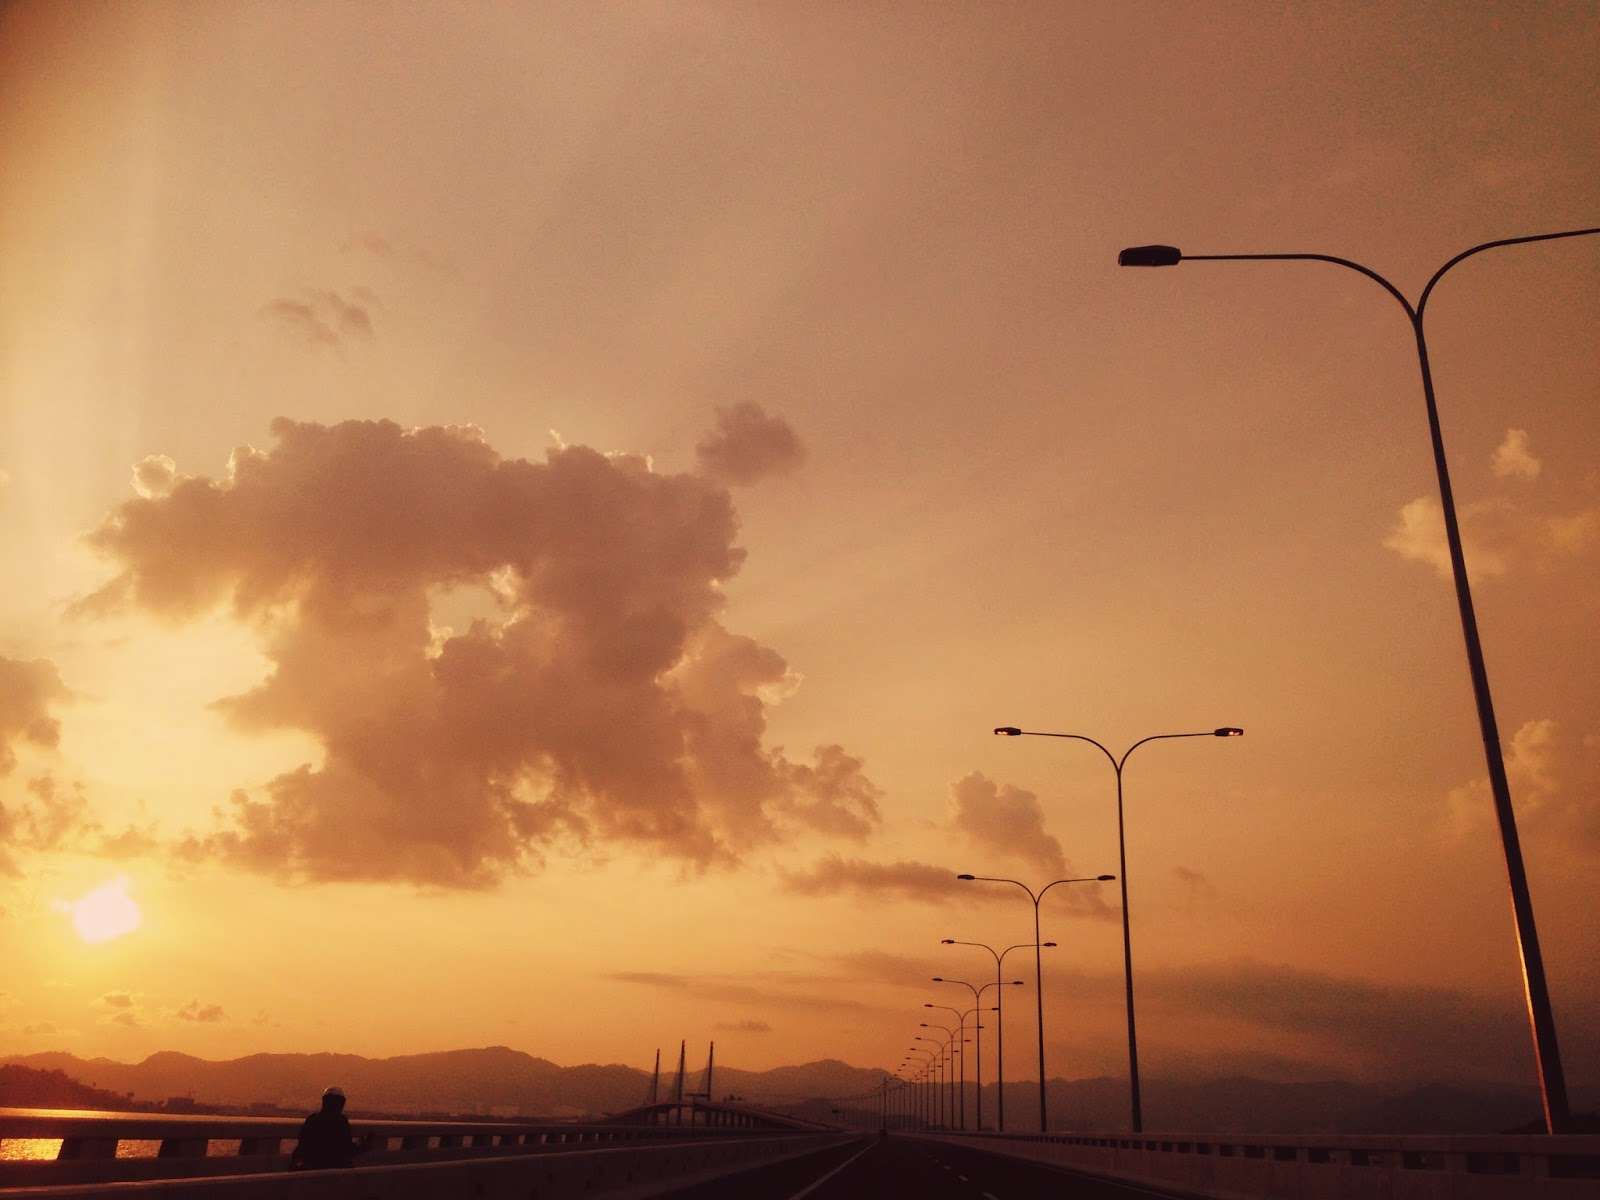 Second Penang Bridge at sunset